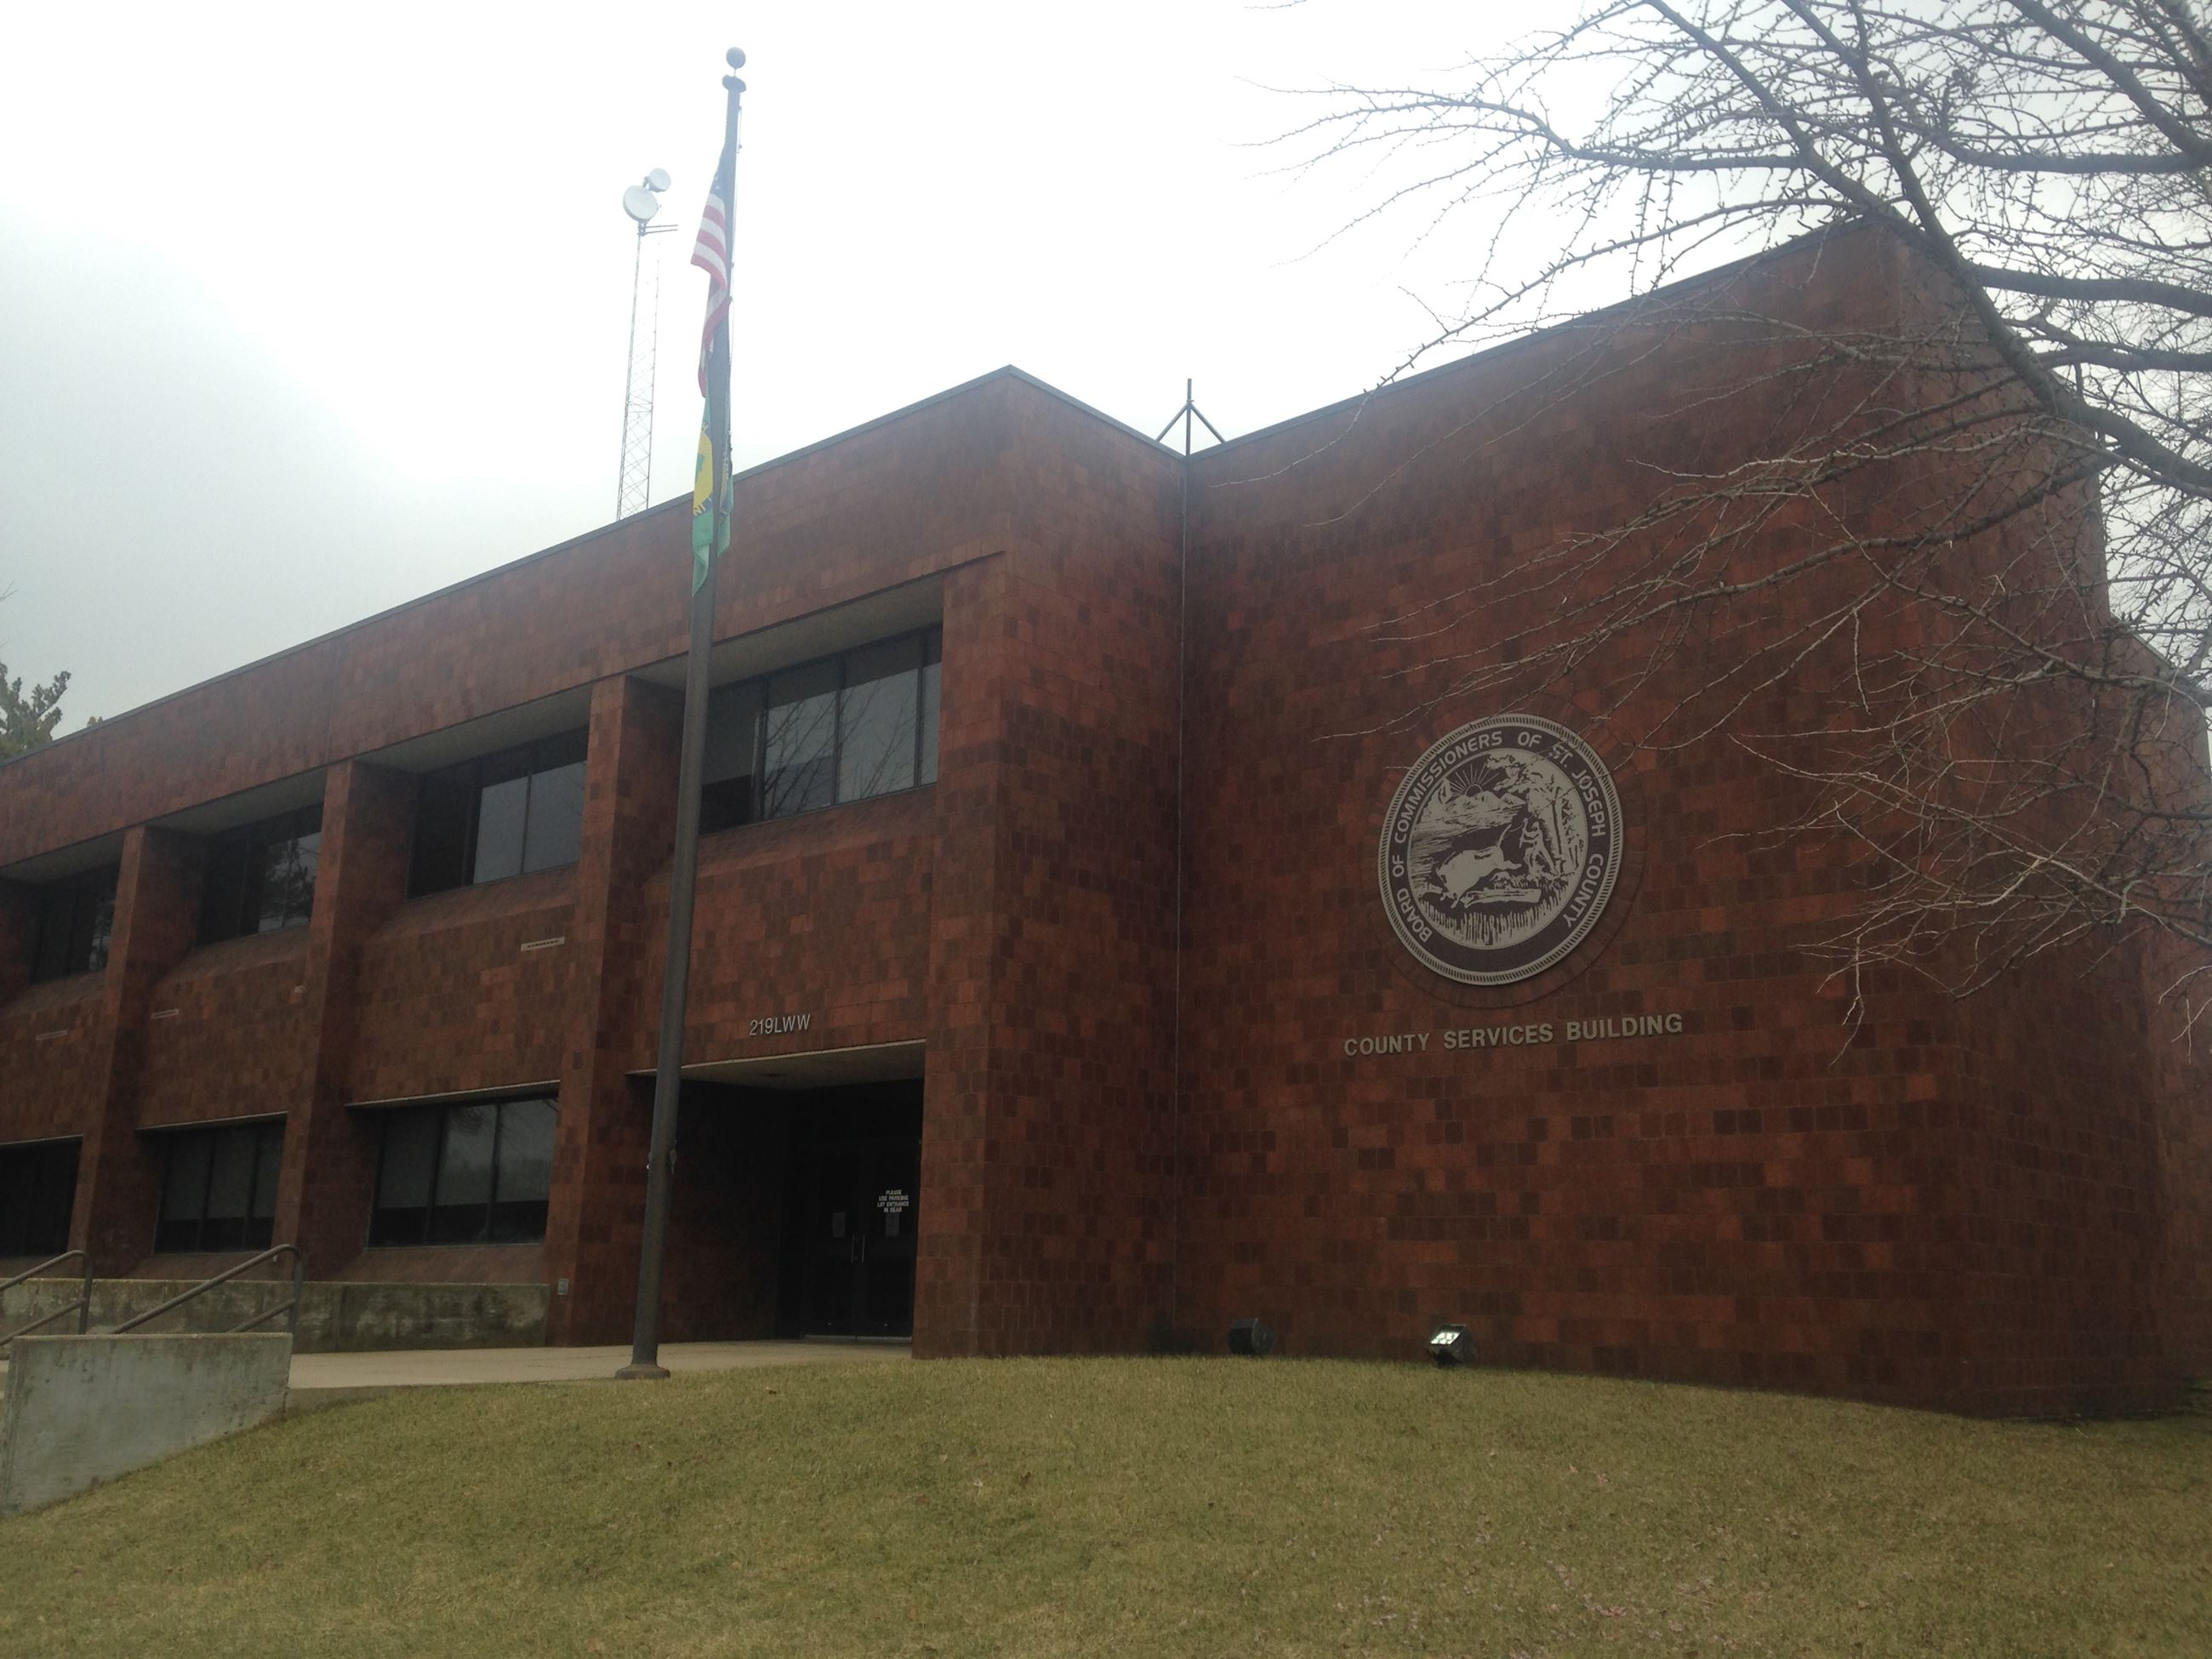 This is an image of the courthouse located in Mishawaka, Indiana